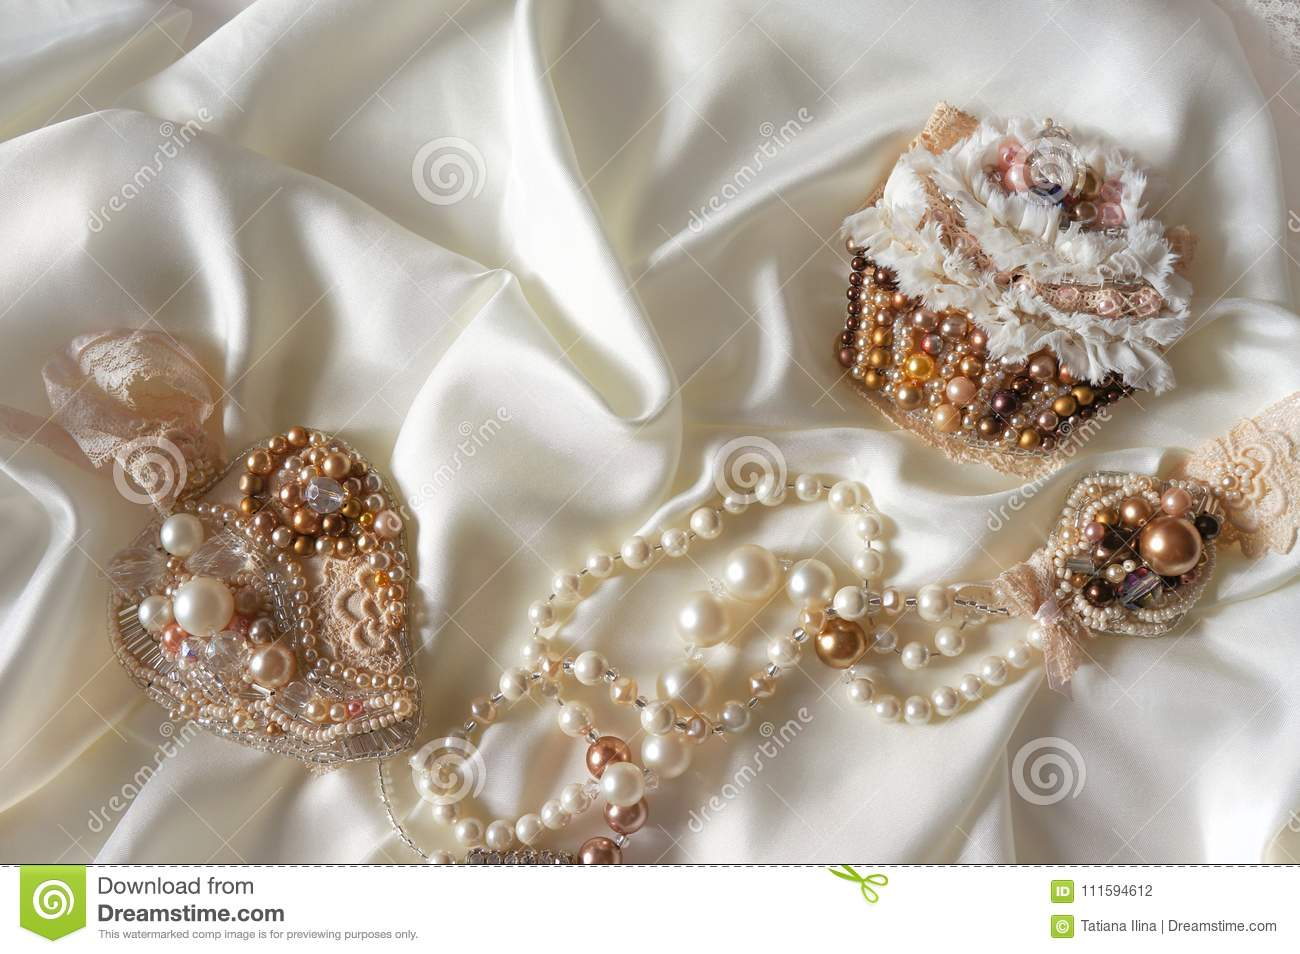 Where To Get Bridal Jewelry Textile Wedding Background With Hand Made Bridal Jewelry Stock